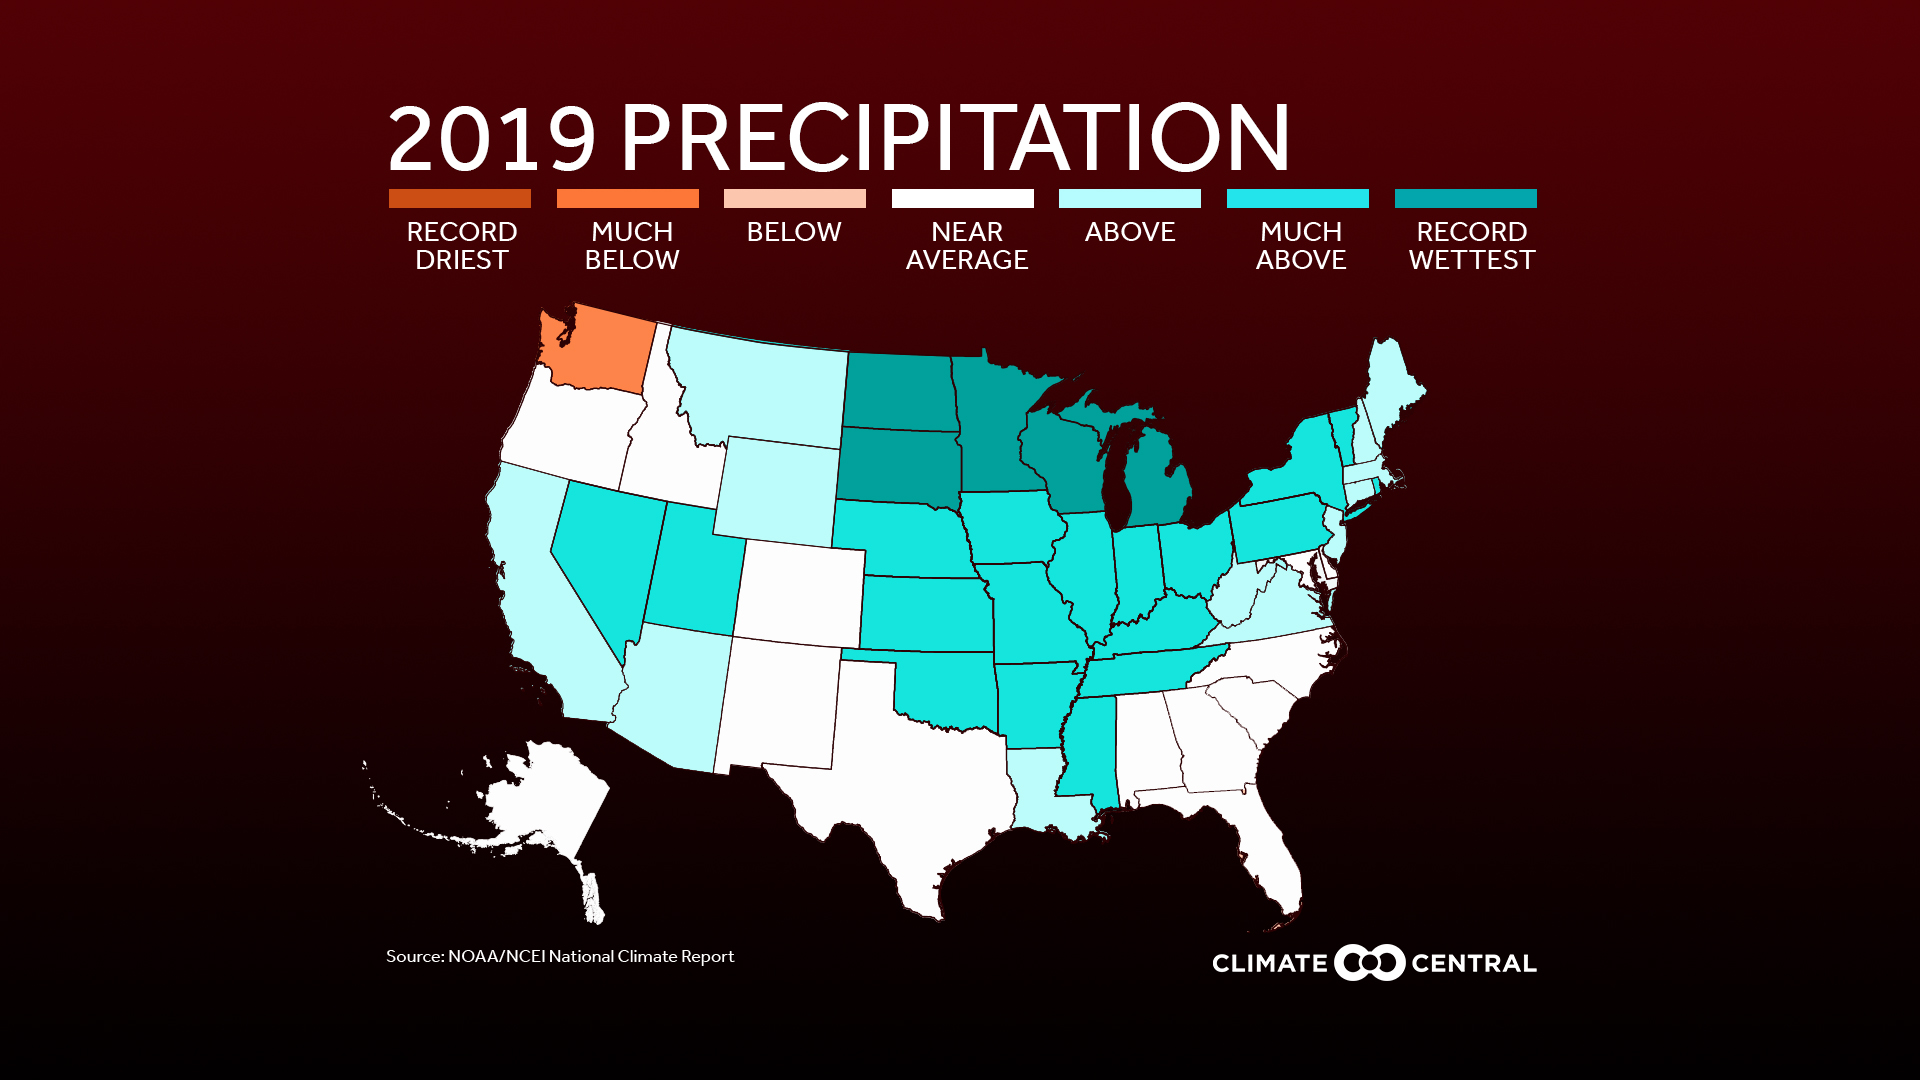 It's official: 2019 was the nation's second wettest year on record